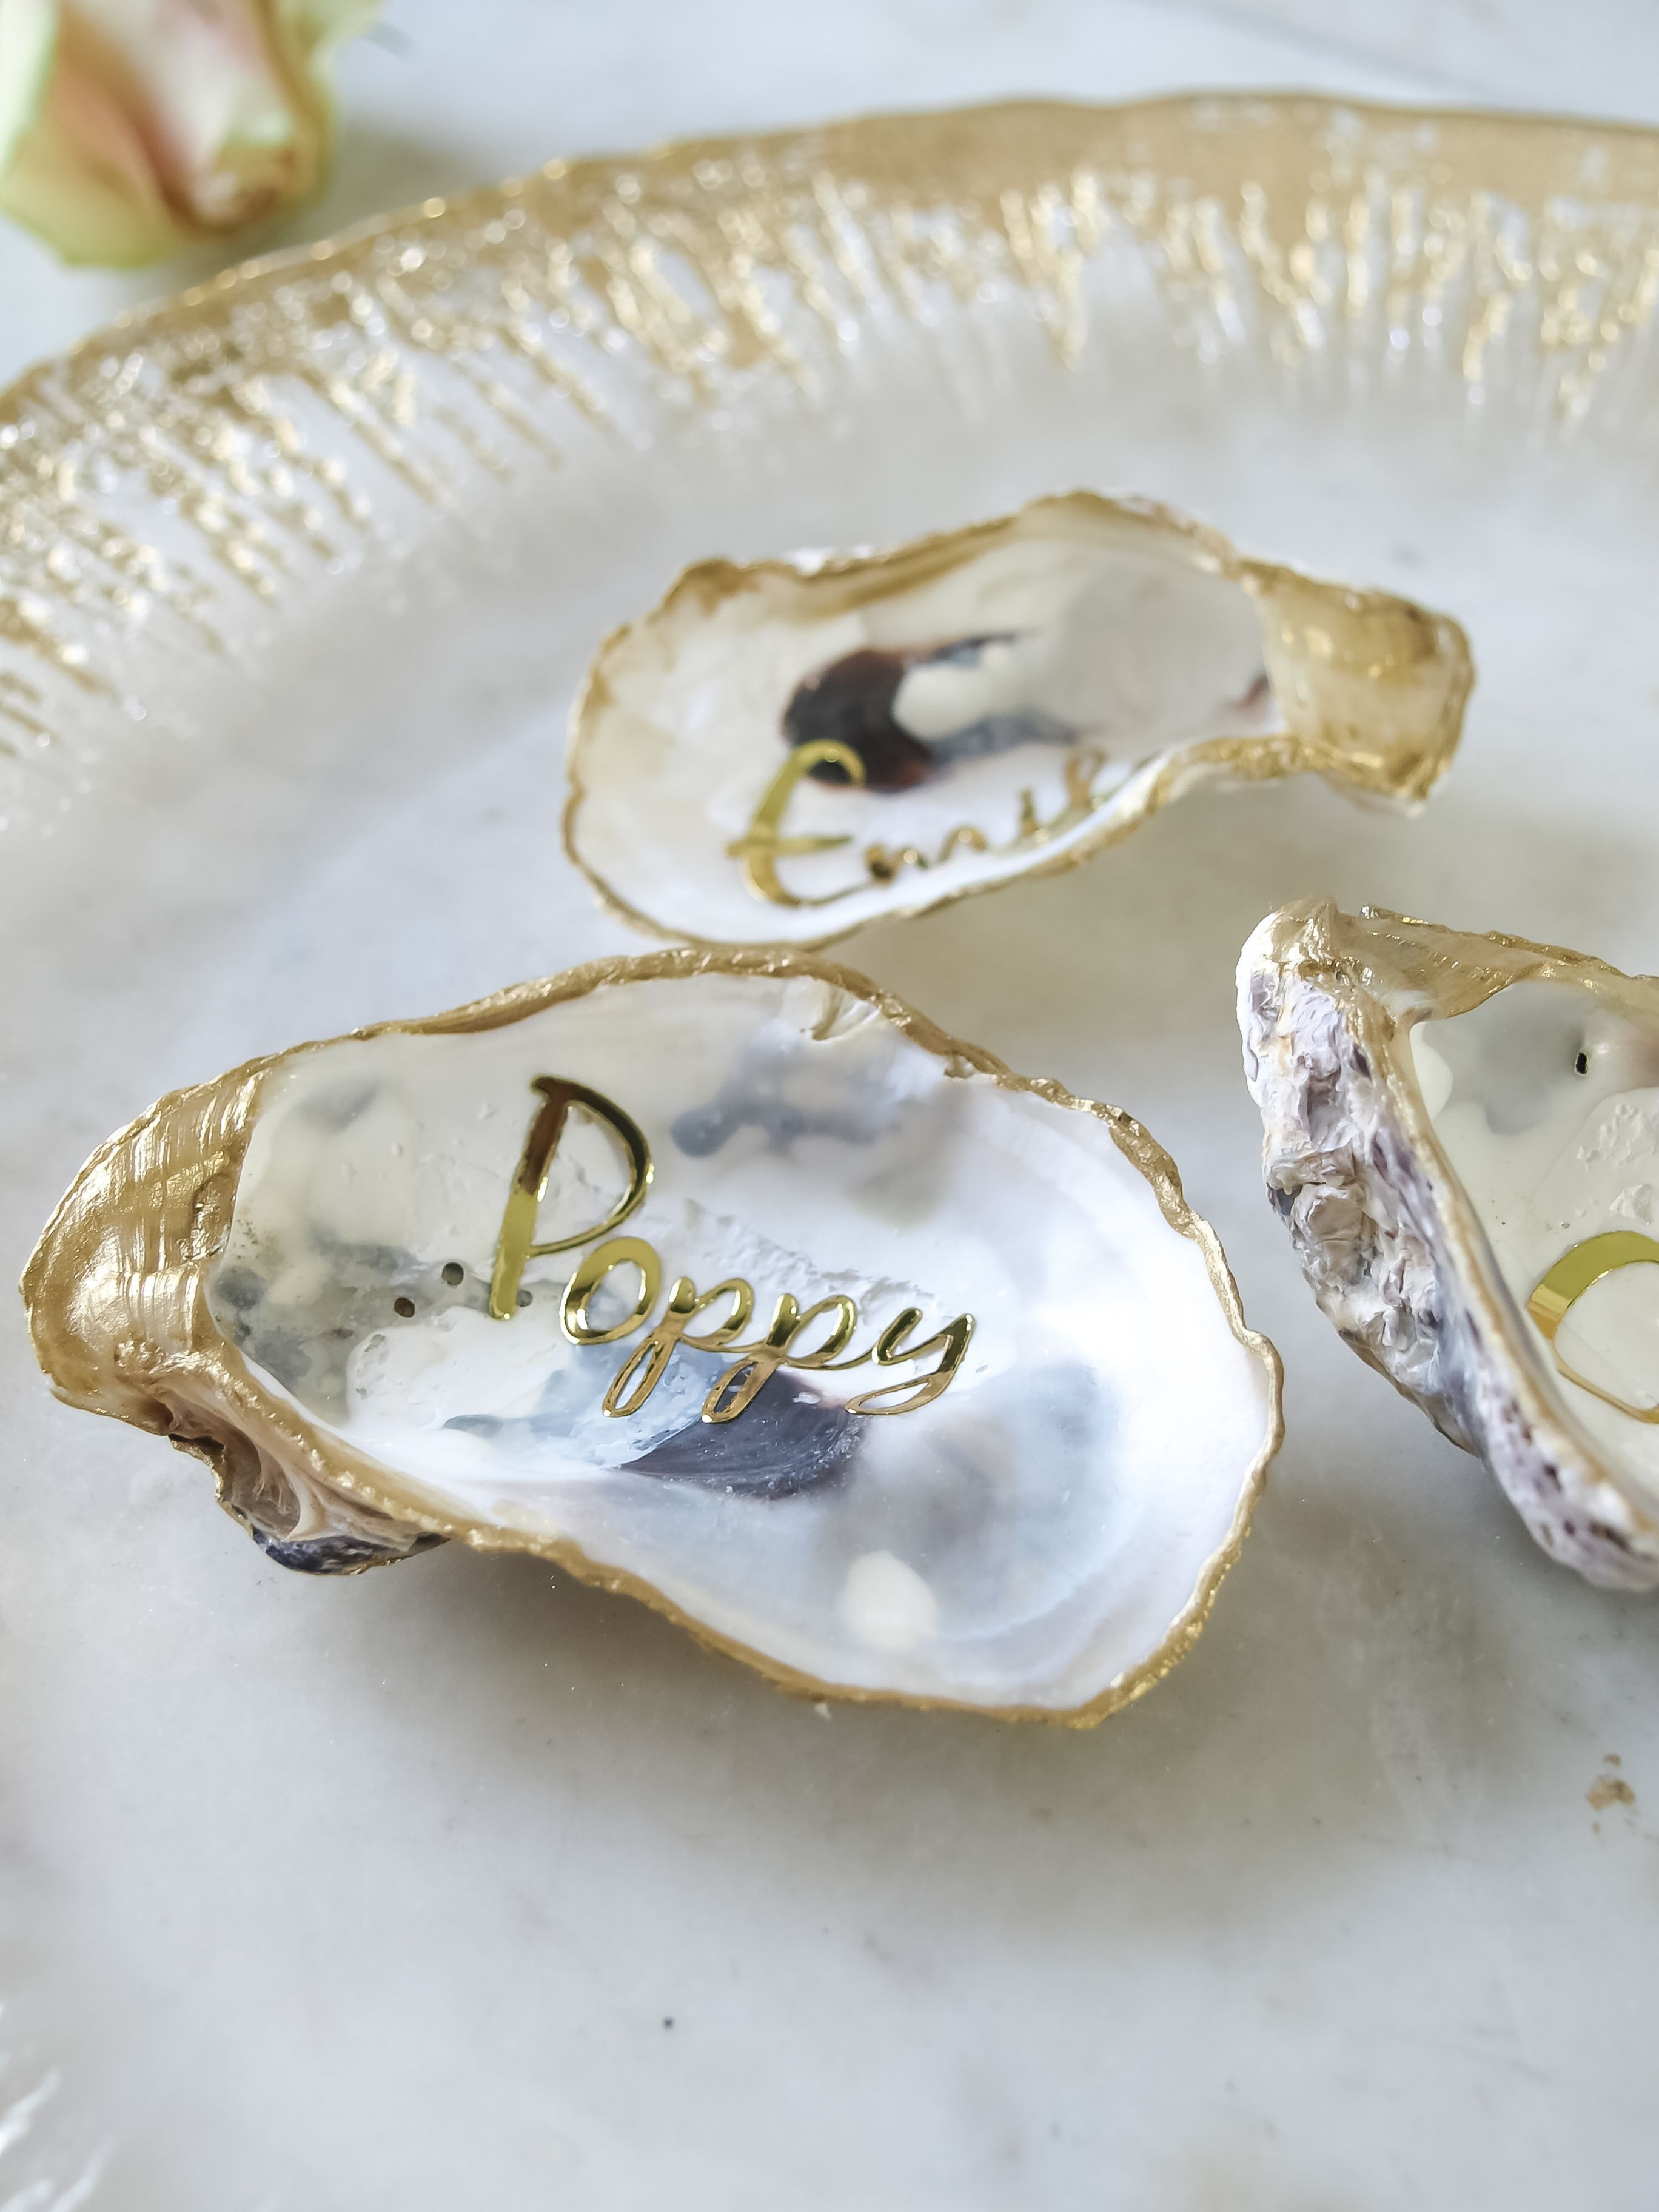 Such Pretty Oyster Shell Favours For A Sophisticated Wedding Table